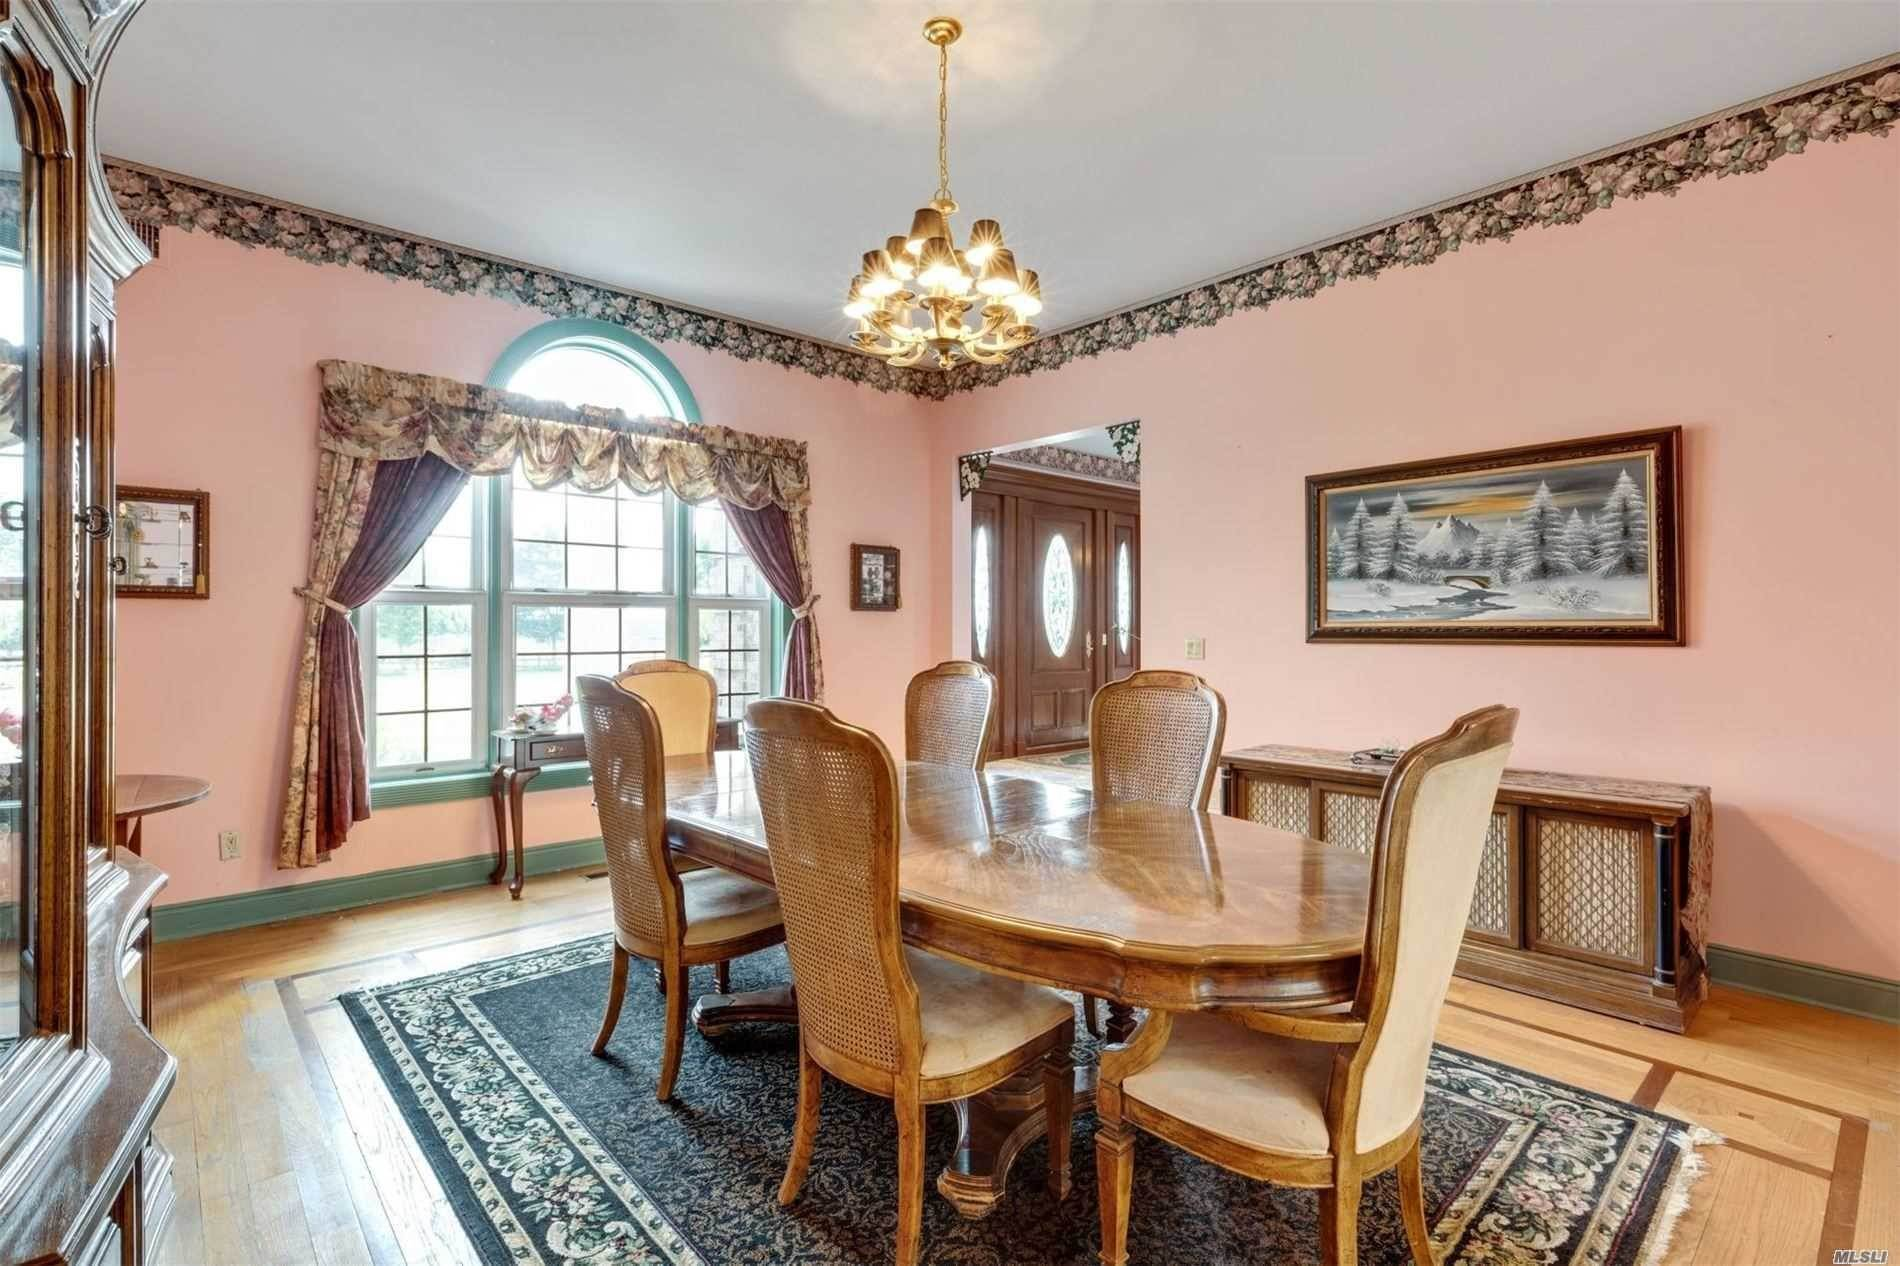 11. Single Family Home for Sale at Manorville,NY,United States Manorville, New York,11949 United States